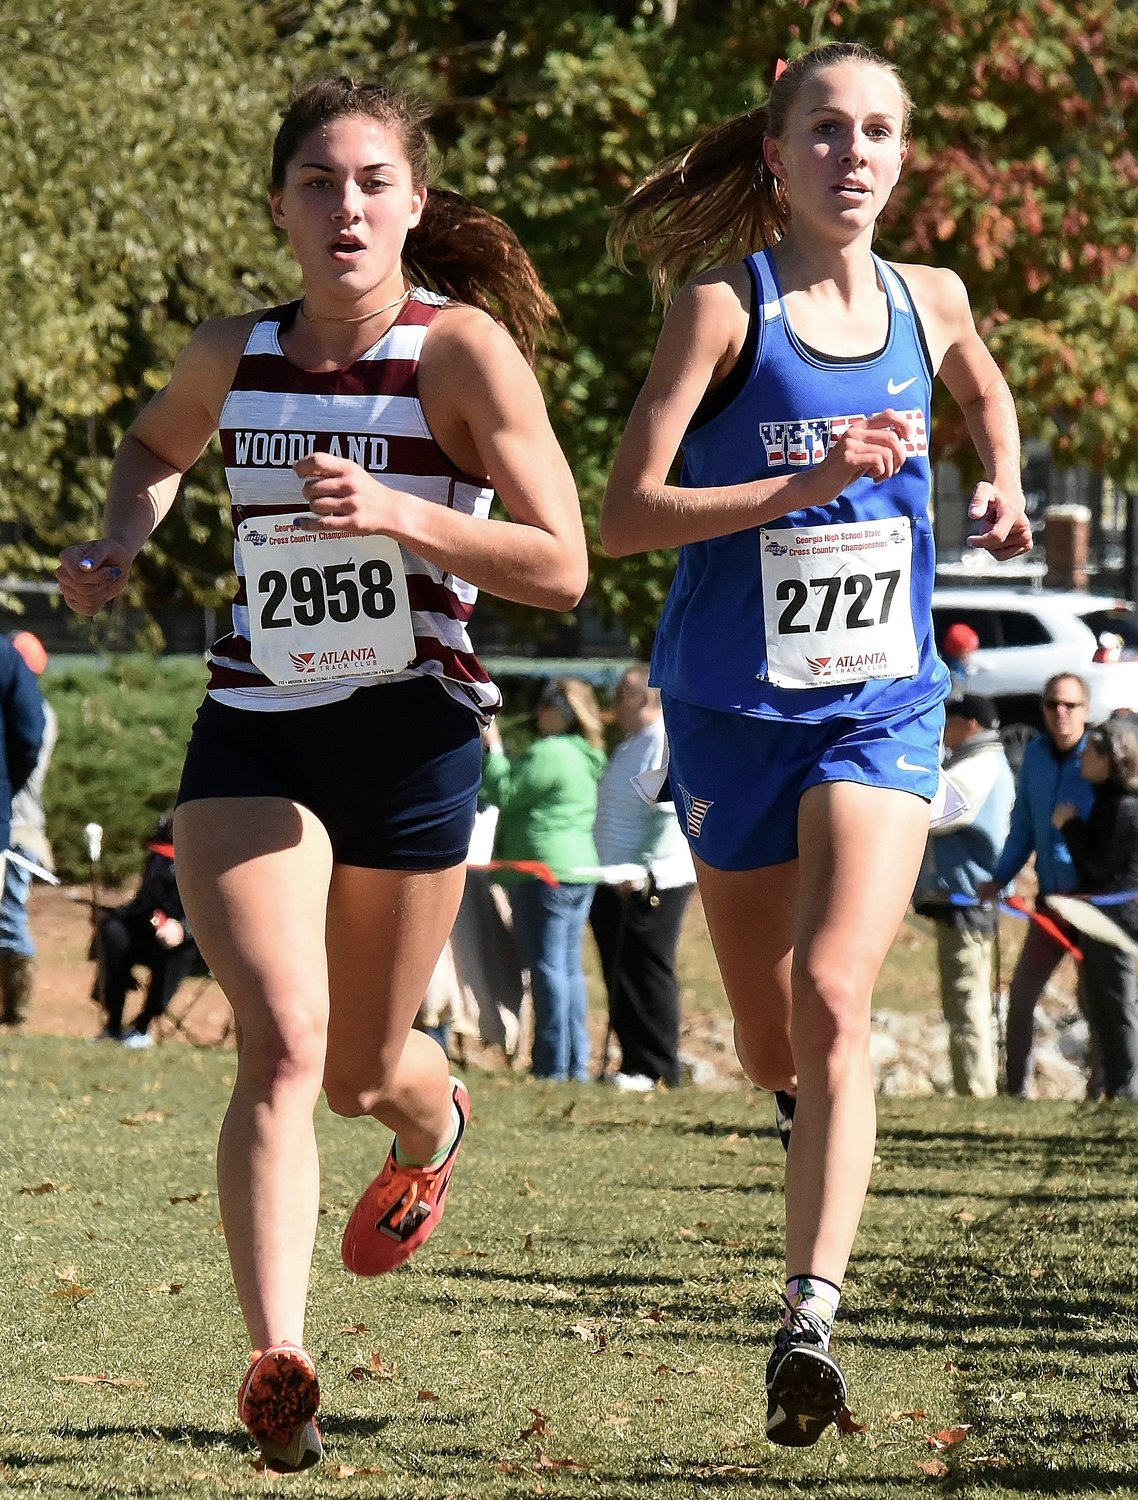 Woodland senior McKenna Trapheagen runs at the front of the pack with Veterans runner Mackenzie Walls during the Class 5A state championship meet Friday in Carrollton. Trapheagen separated from Walls in the second half of the race to win her second consecutive individual state title.